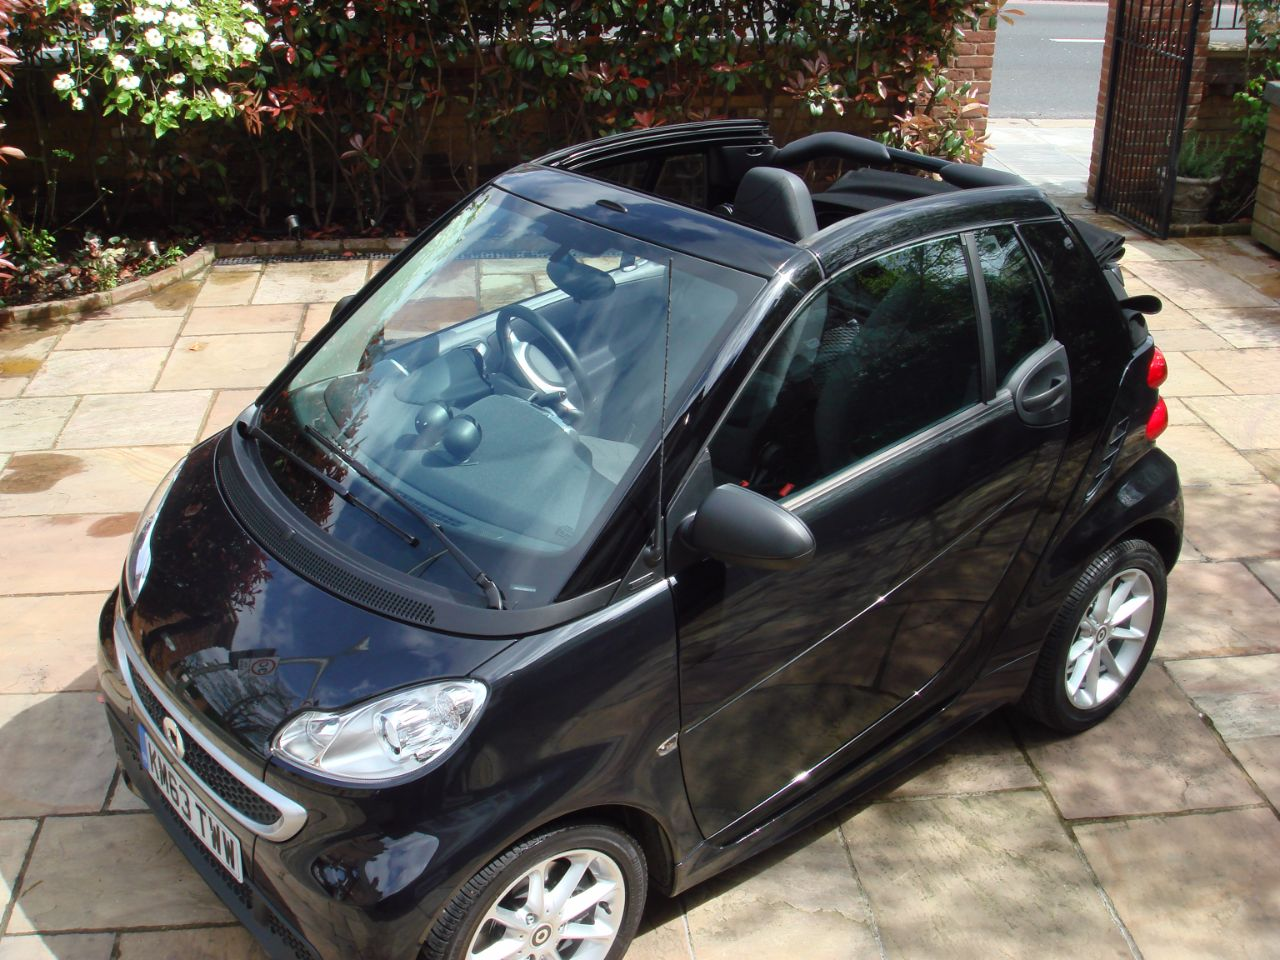 Smart Fortwo Cabrio 1.0 Passion mhd 2dr Softouch Auto [2010]